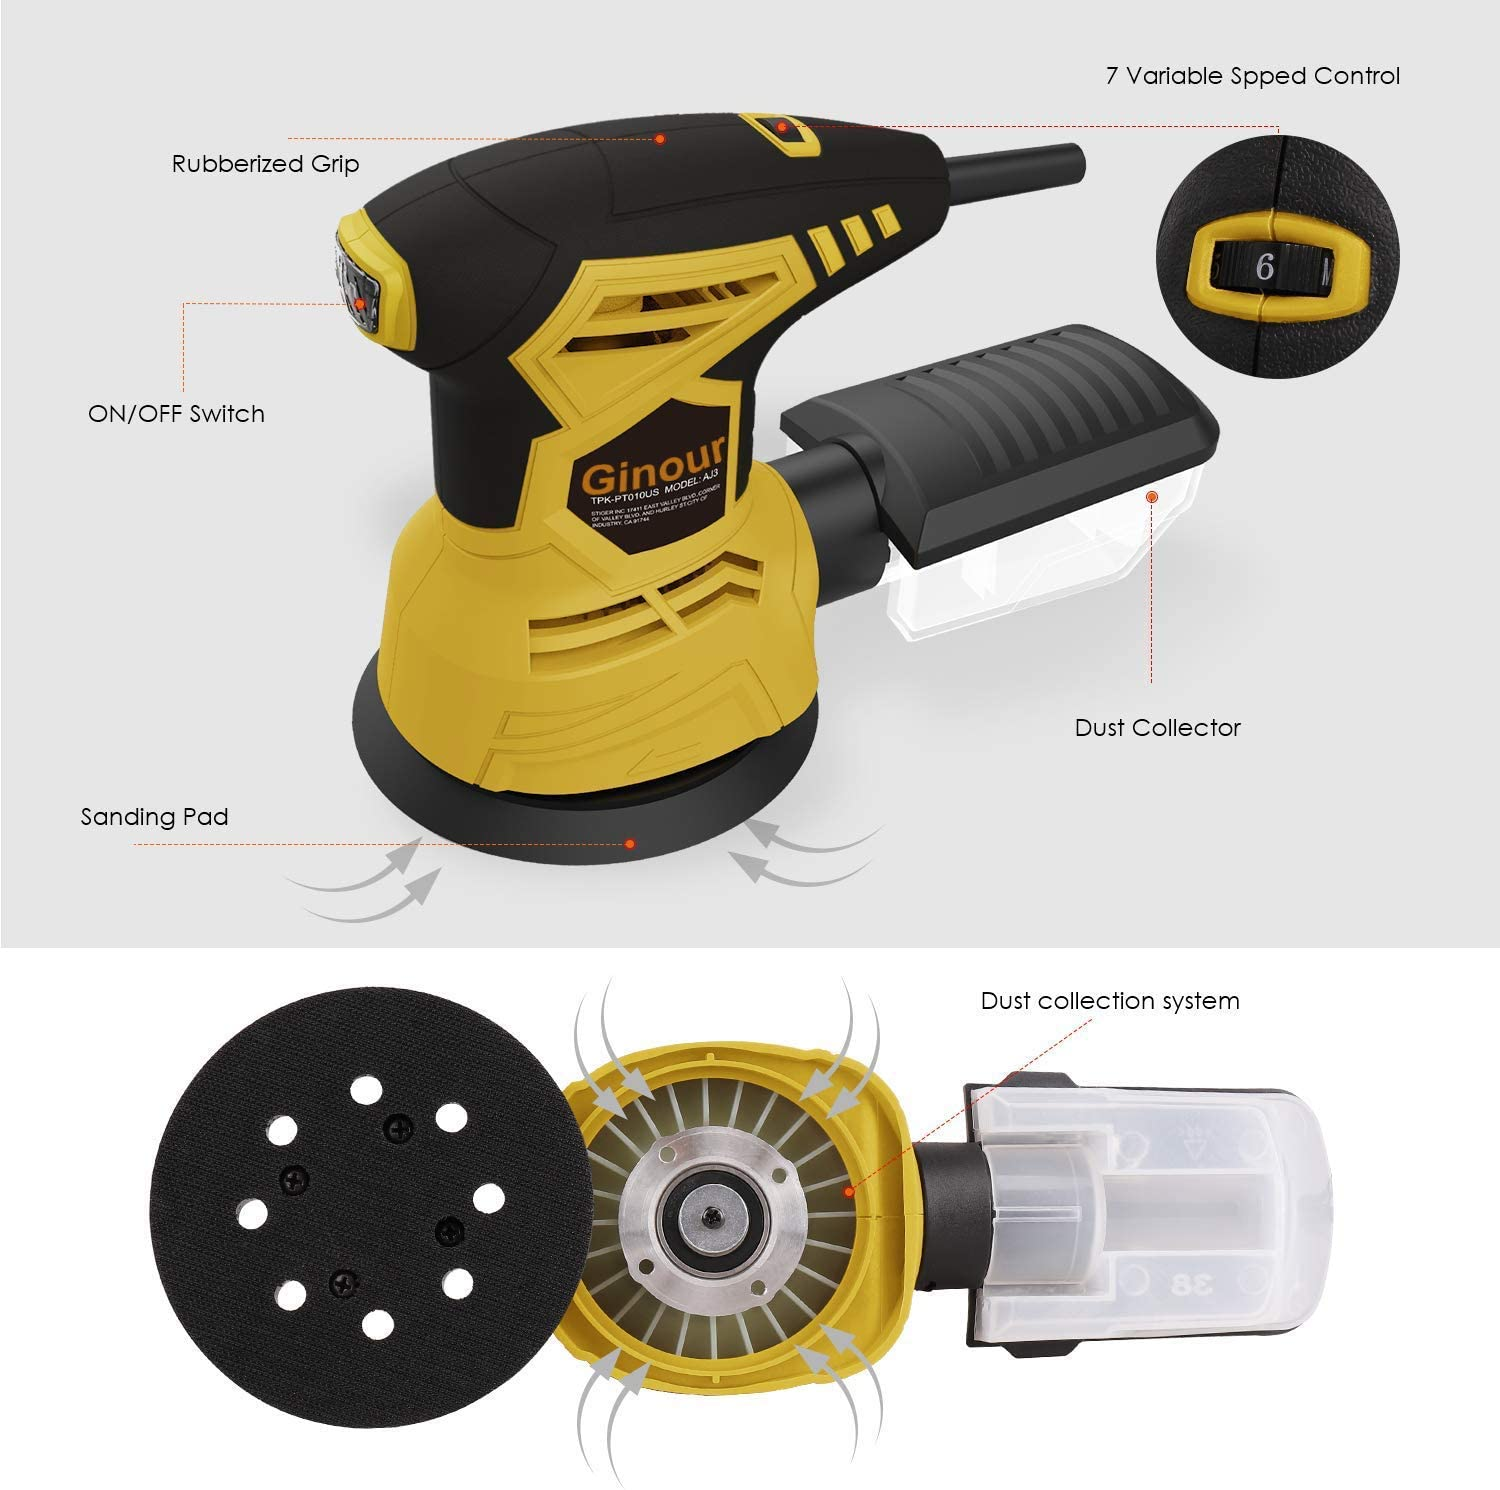 Ginour Random Orbit Sander, 2.5A 5-inch sander with 10Pcs Sandpapers, 12000 OPM, 6 Max Variable Speed, Efficient Dust Collection System, Ideal for Sanding, Finishing, Polishing Wood